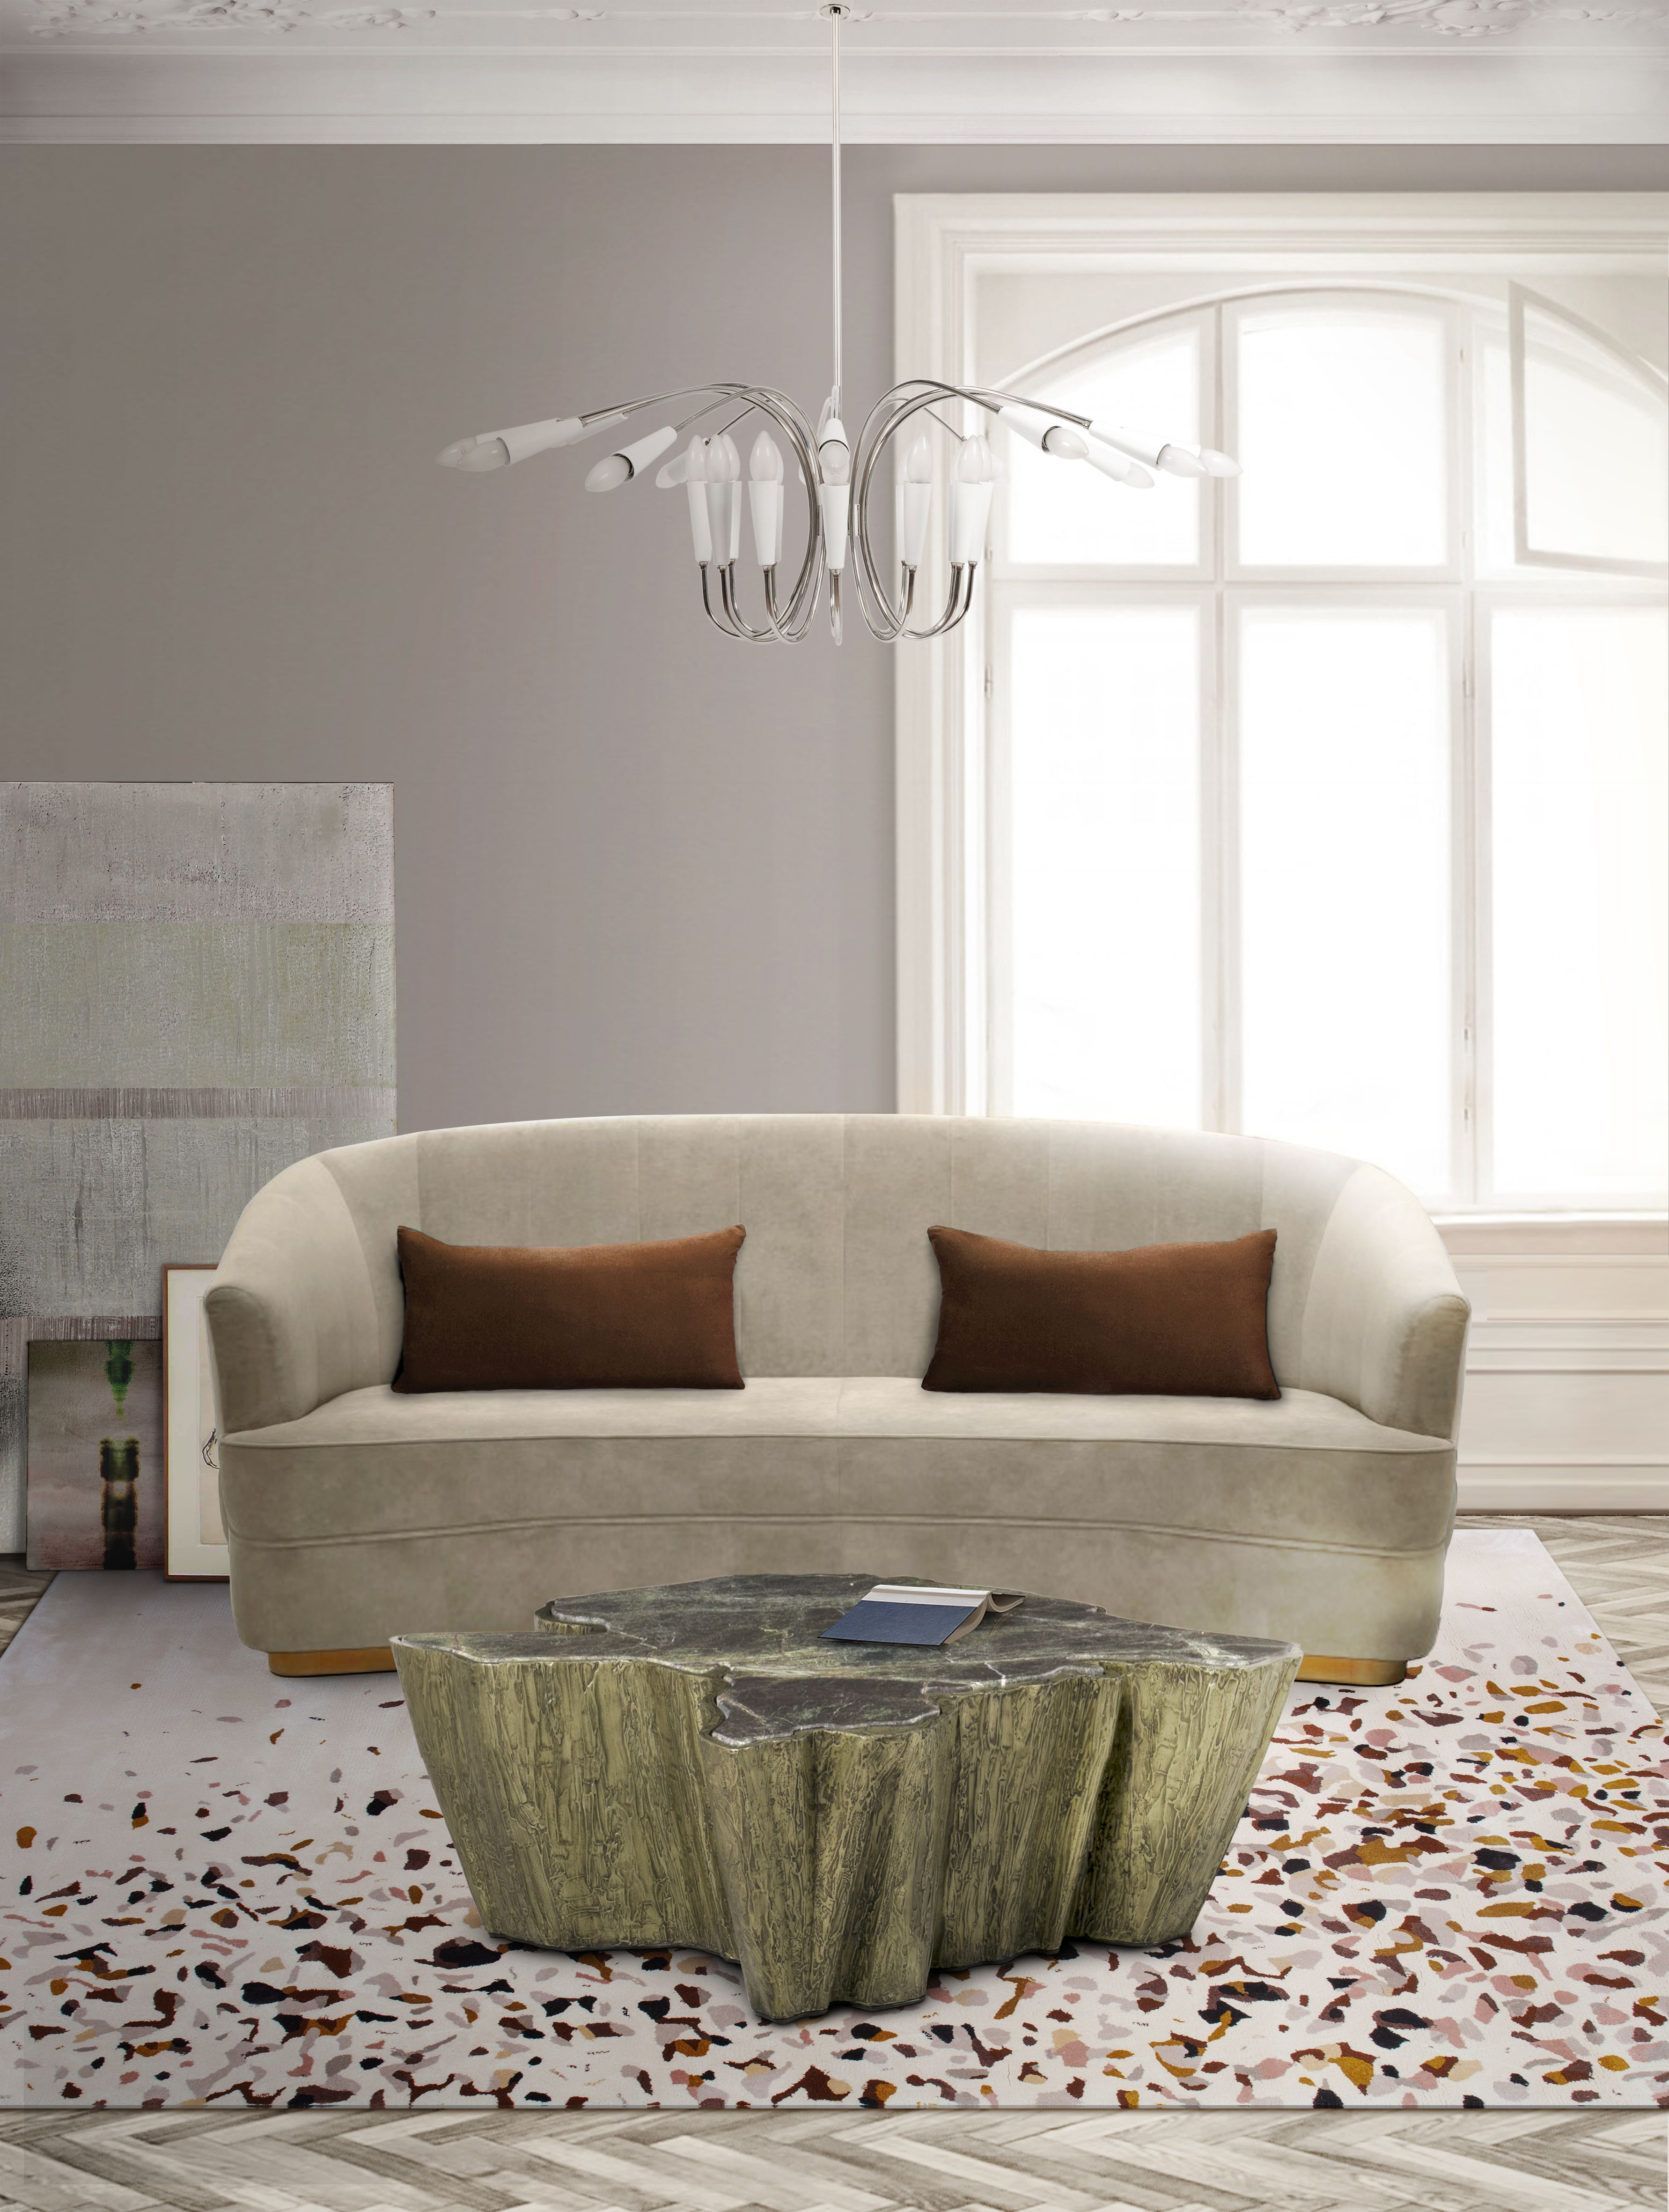 Terracotta Living Room With Terrazzo Rug by Rug'Society